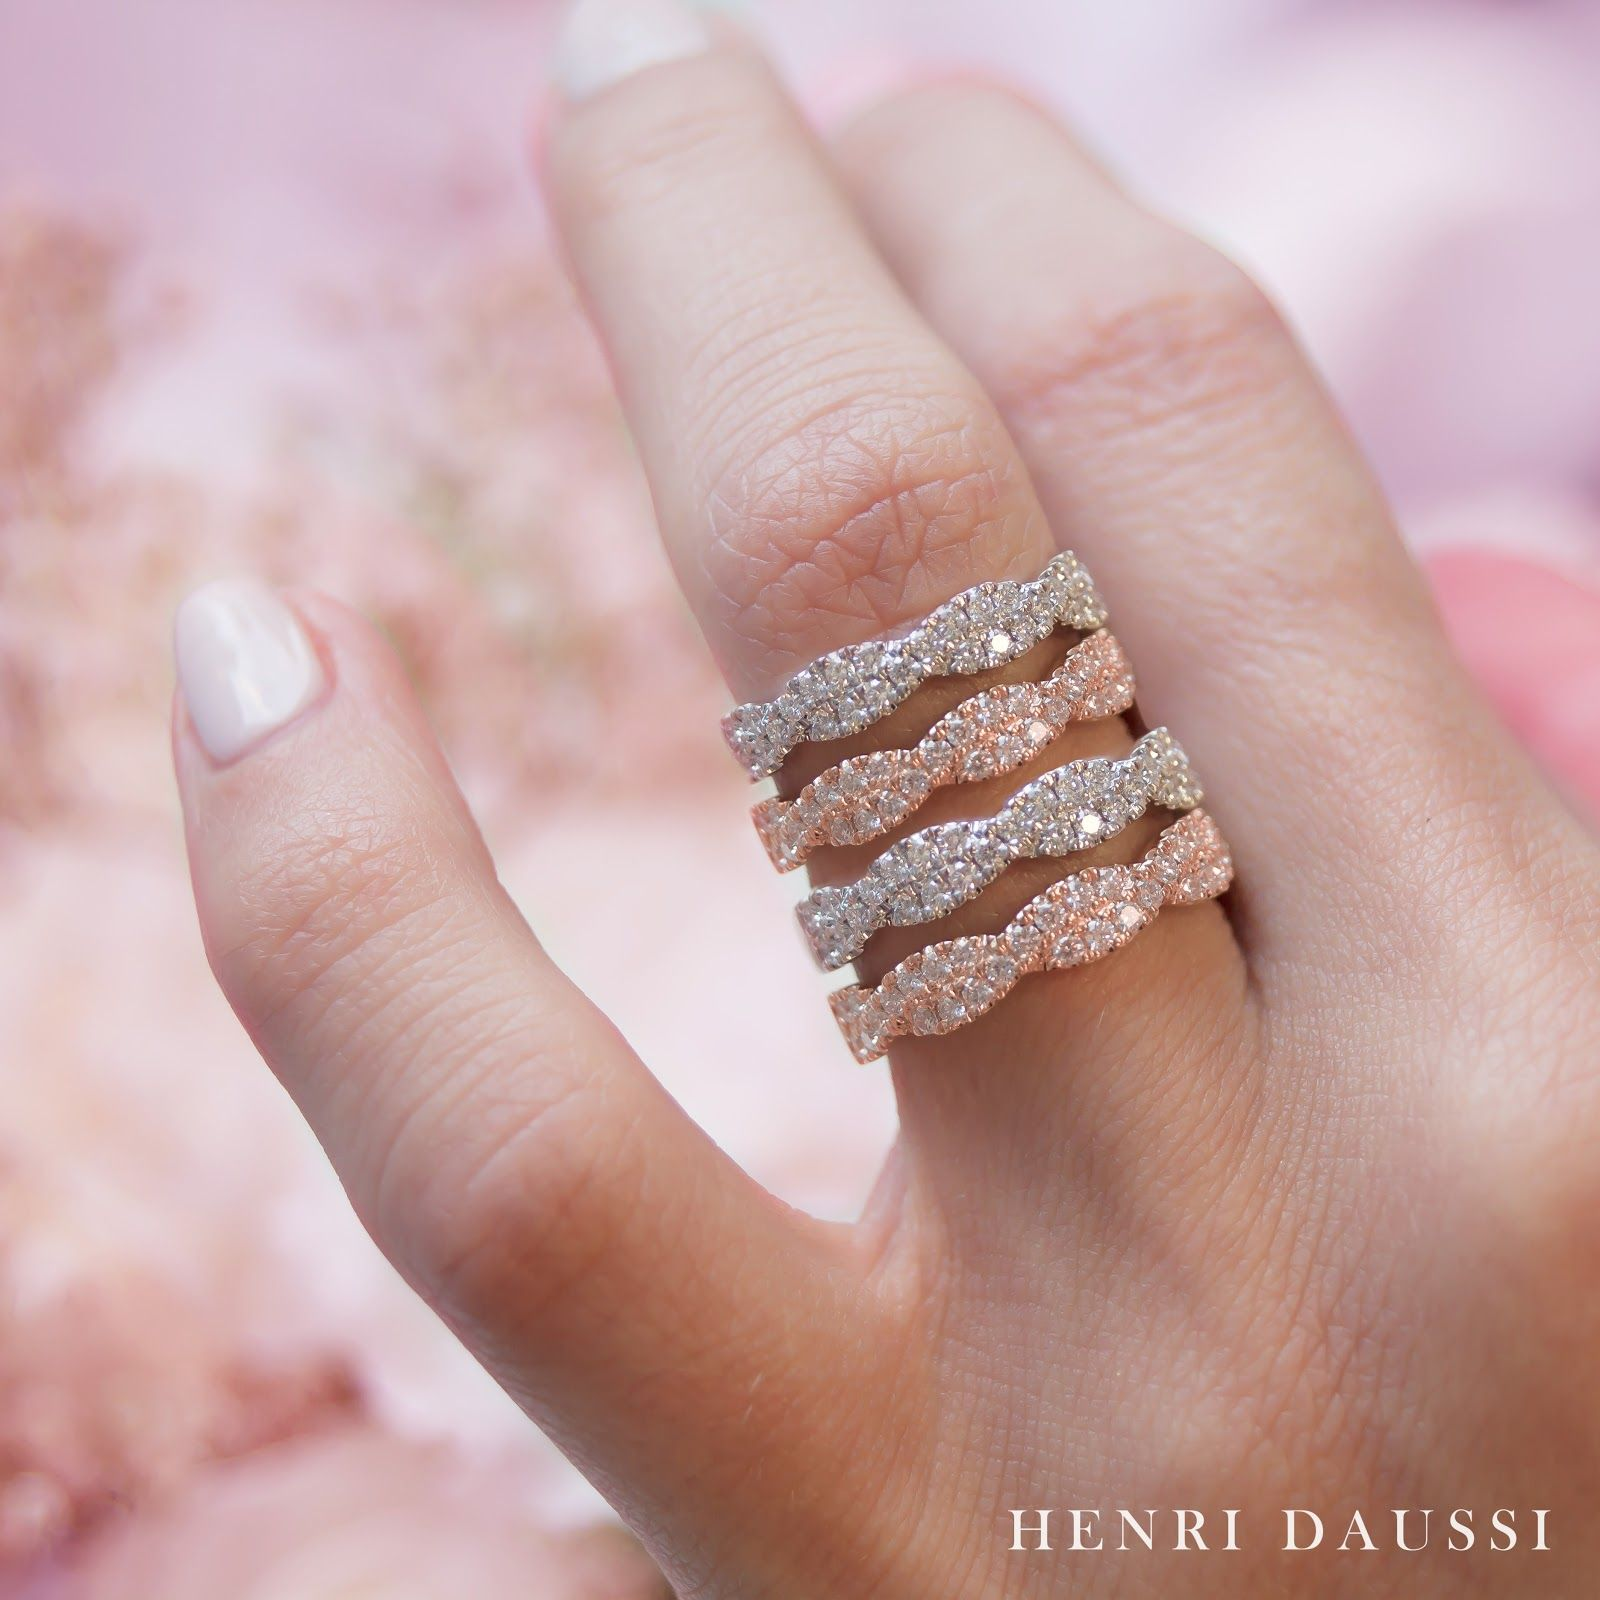 Pinterest ↠ TheAmyJean | Jewelry I like! | Pinterest | Ring, Bling ...